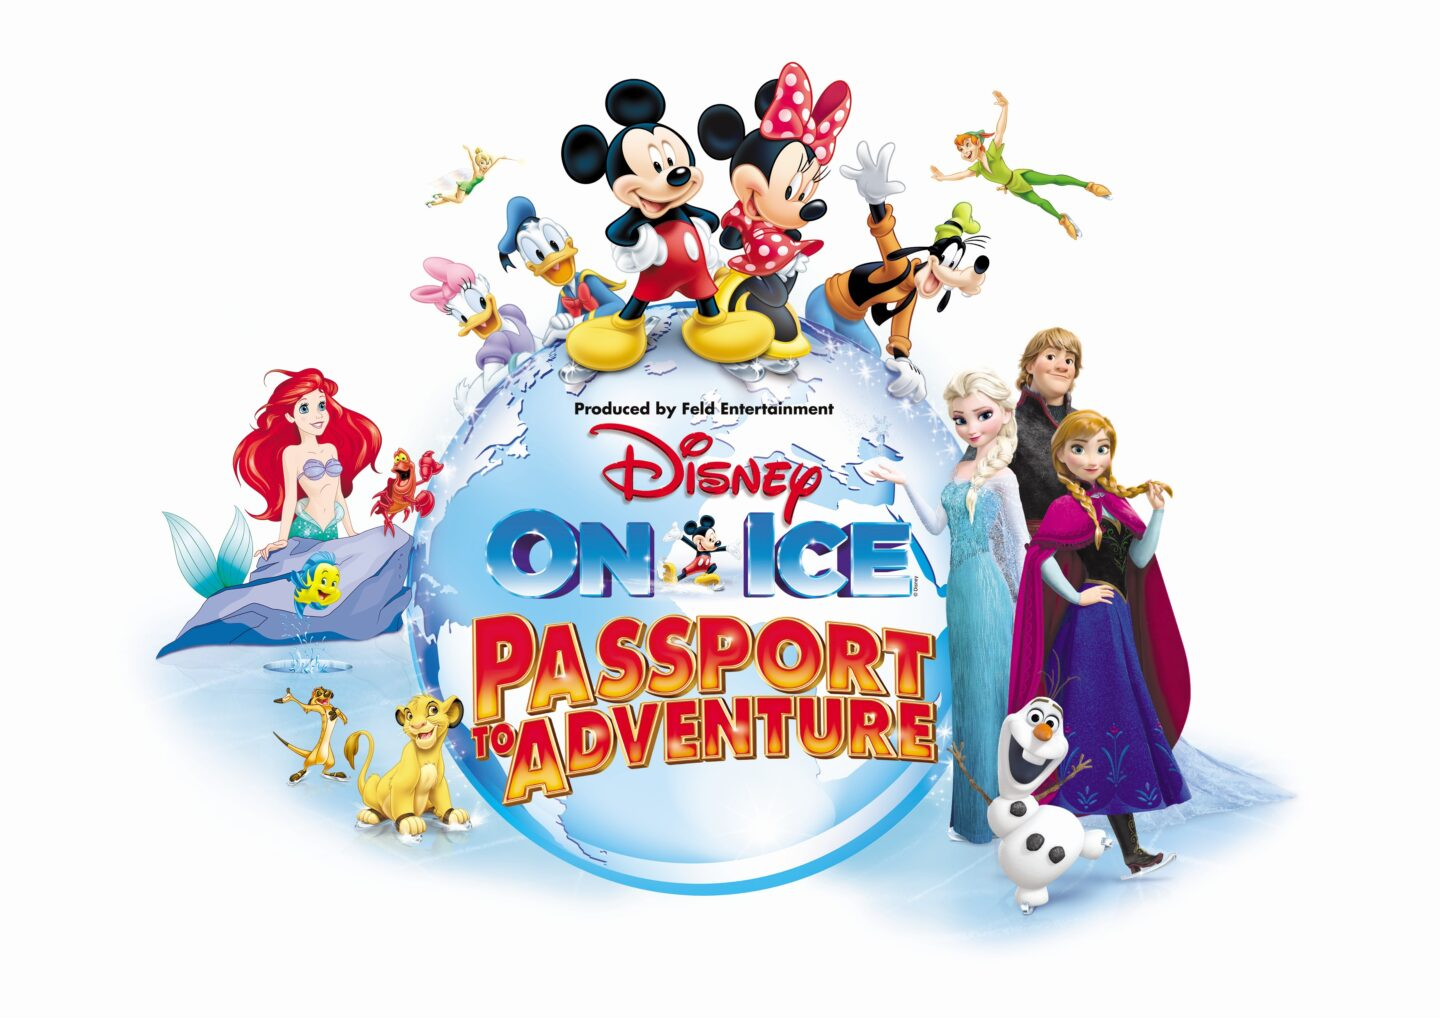 Disney On Ice presents Passport to Adventure Newcastle ticket giveaway